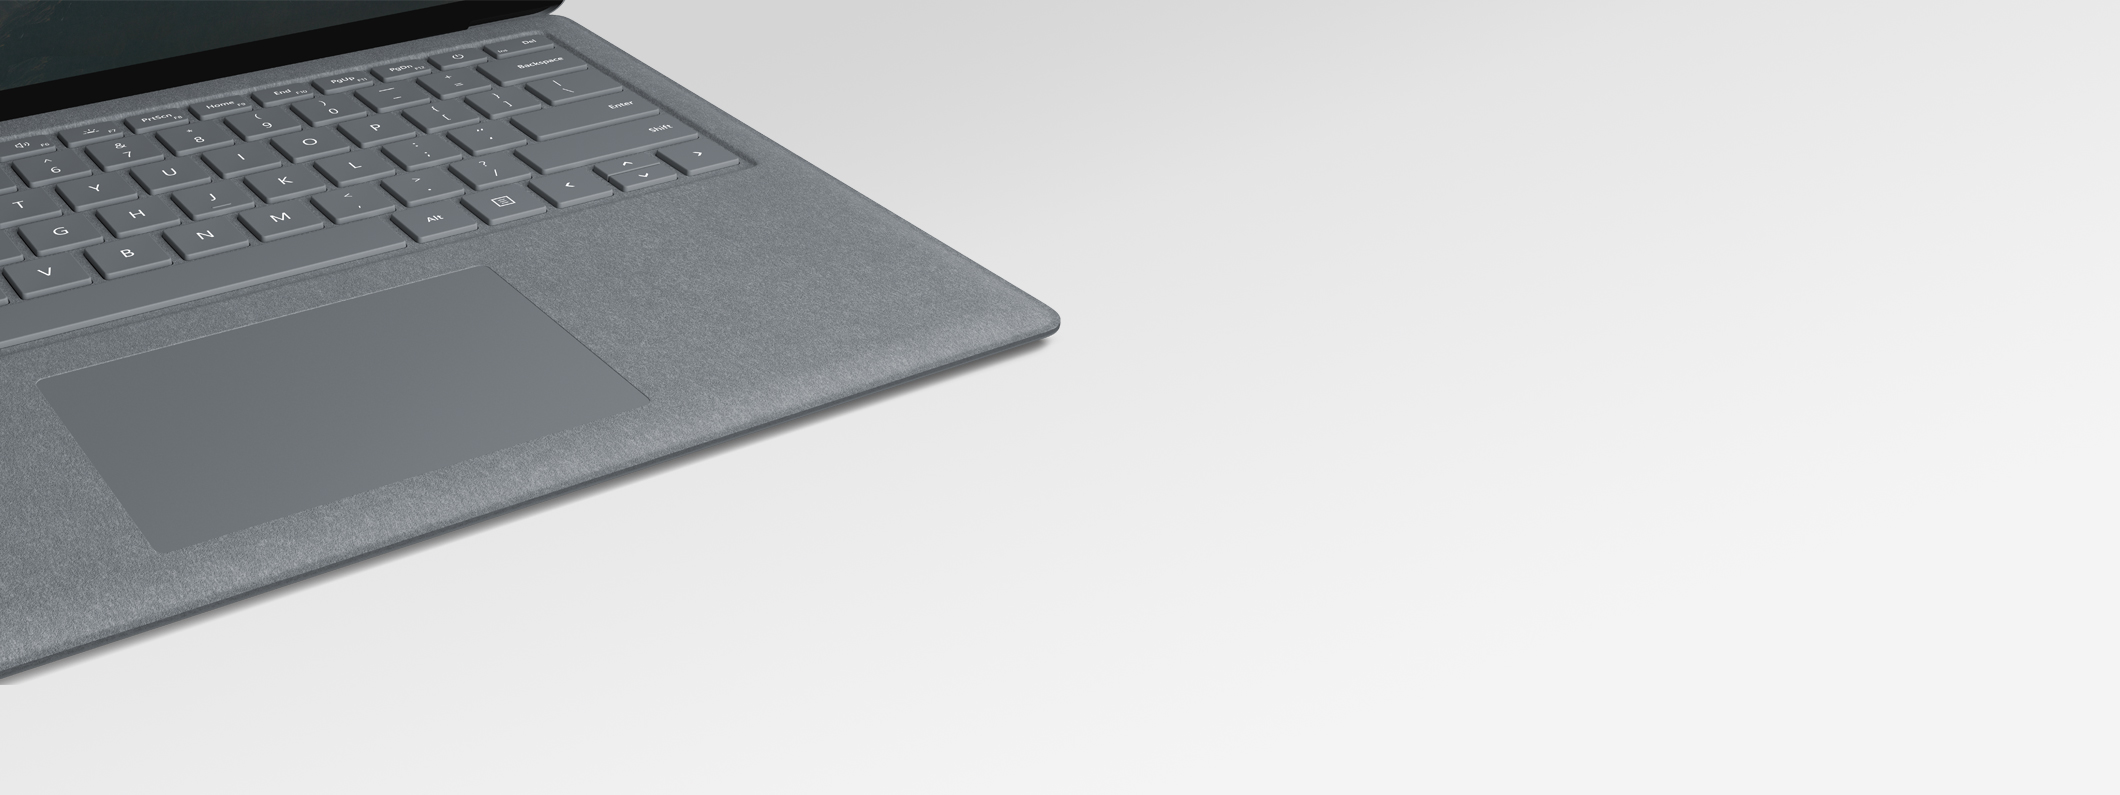 Surface Laptop 2 keyboard and trackpad